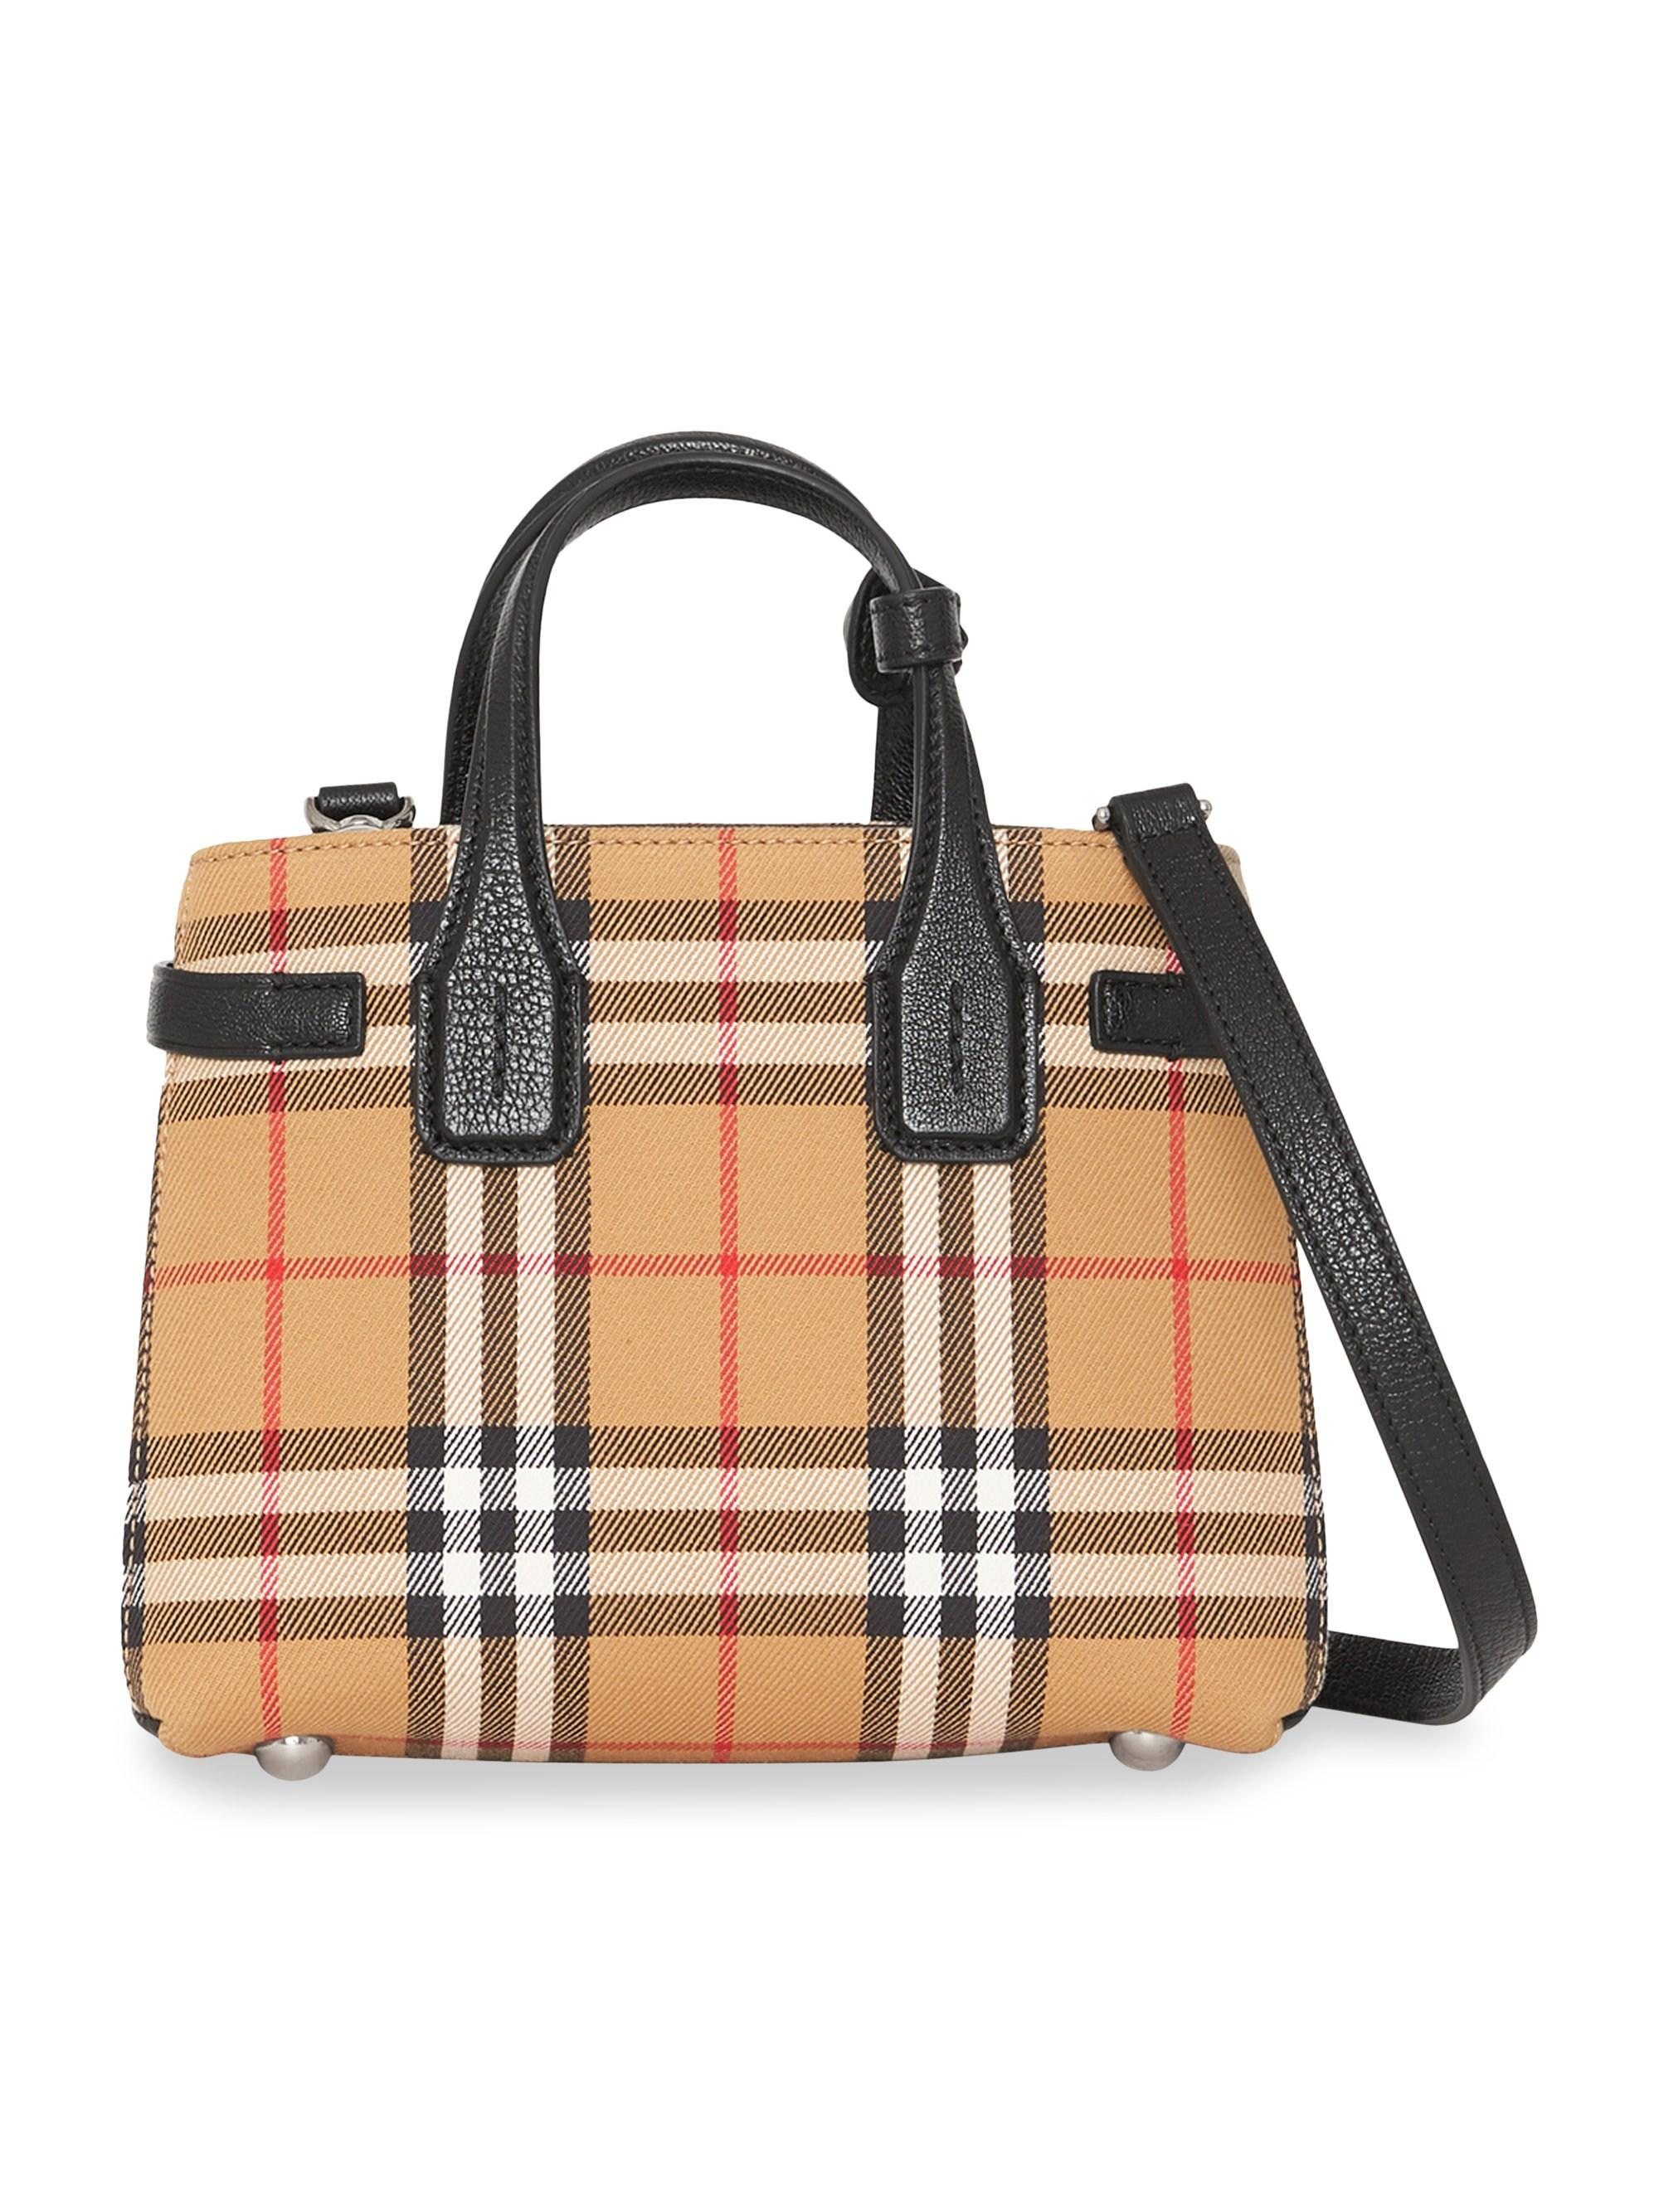 5e2c2e3b40 Burberry The Baby Banner In Vintage Check And Leather - Save 33% - Lyst